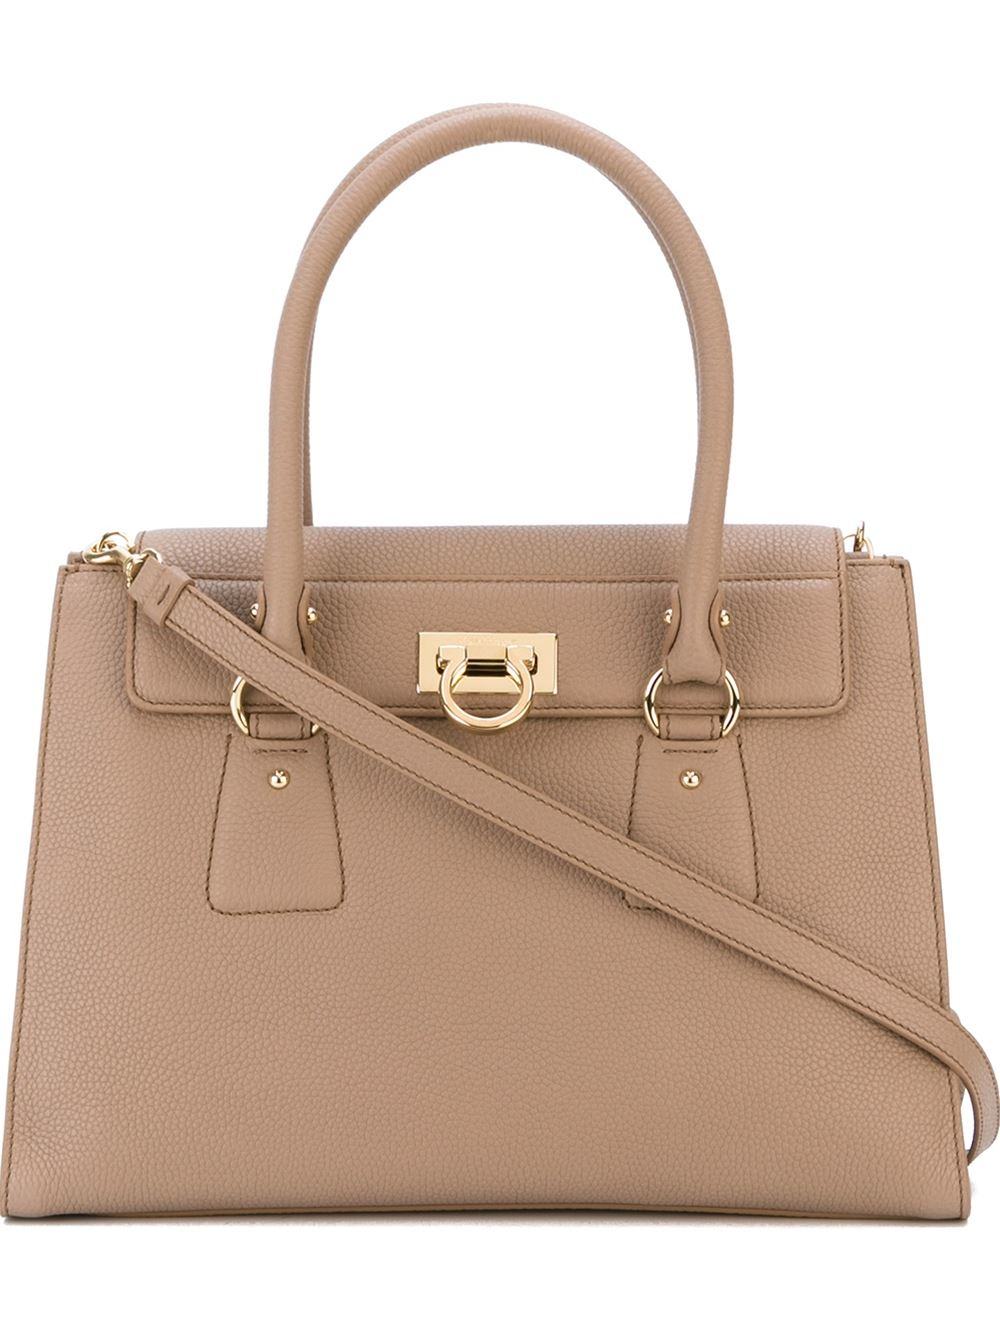 3d5ec9f7ba1 Lyst - Ferragamo Lotty Bag in Natural